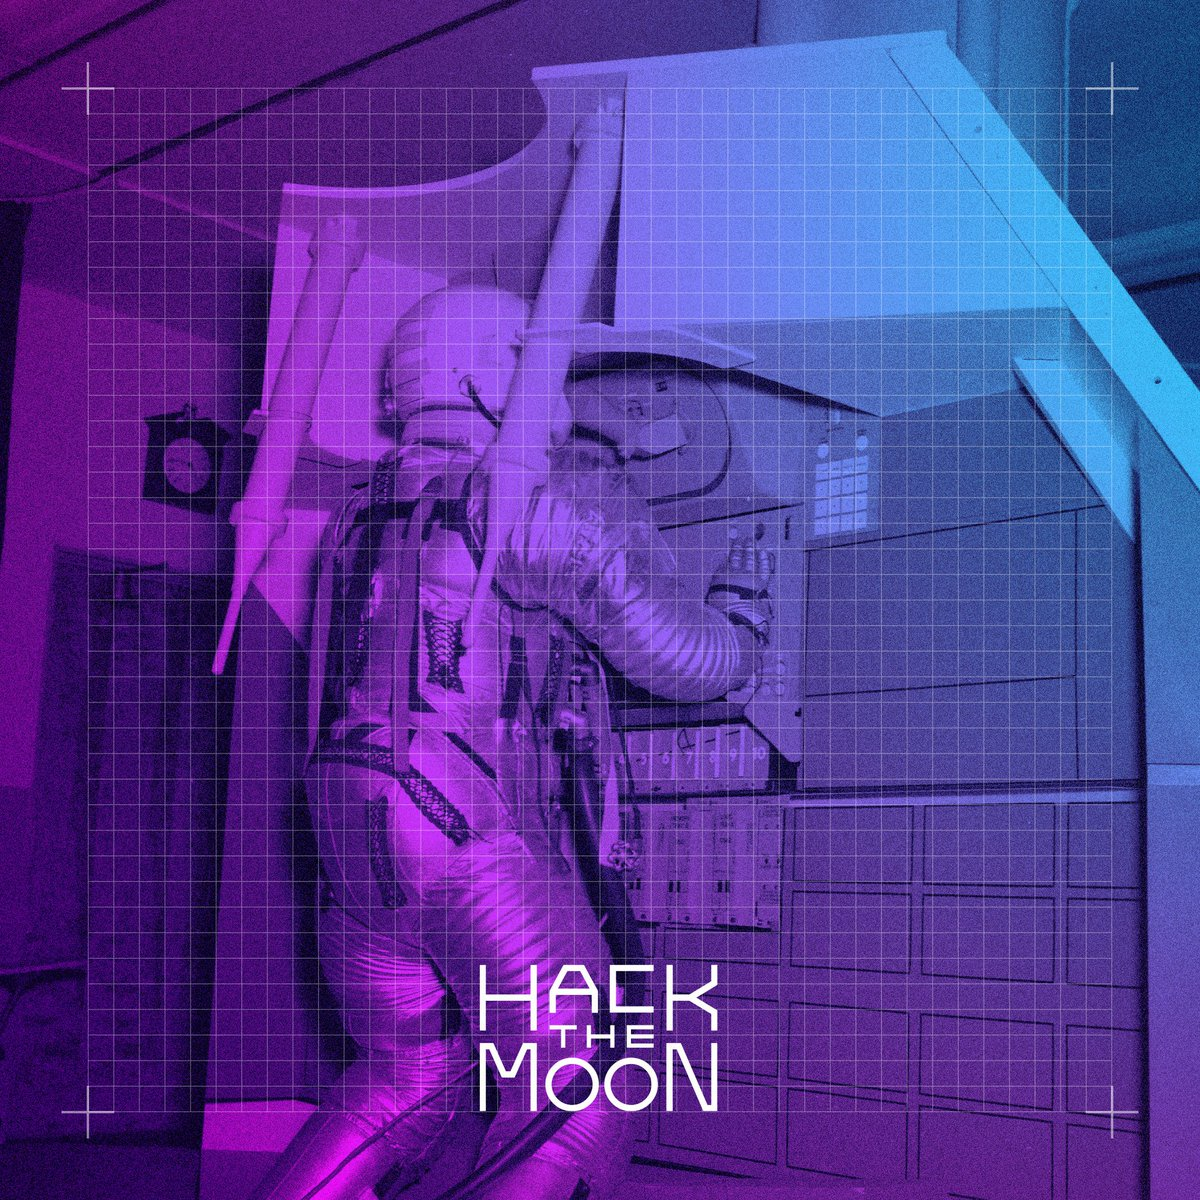 People didnt trust computers to fly planes until #NeilArmstrong used one to get to the moon and back. Learn more about how the innovations developed during the #Apollo missions are part of your everyday life. #hackthemoon bit.ly/2EXx6fk